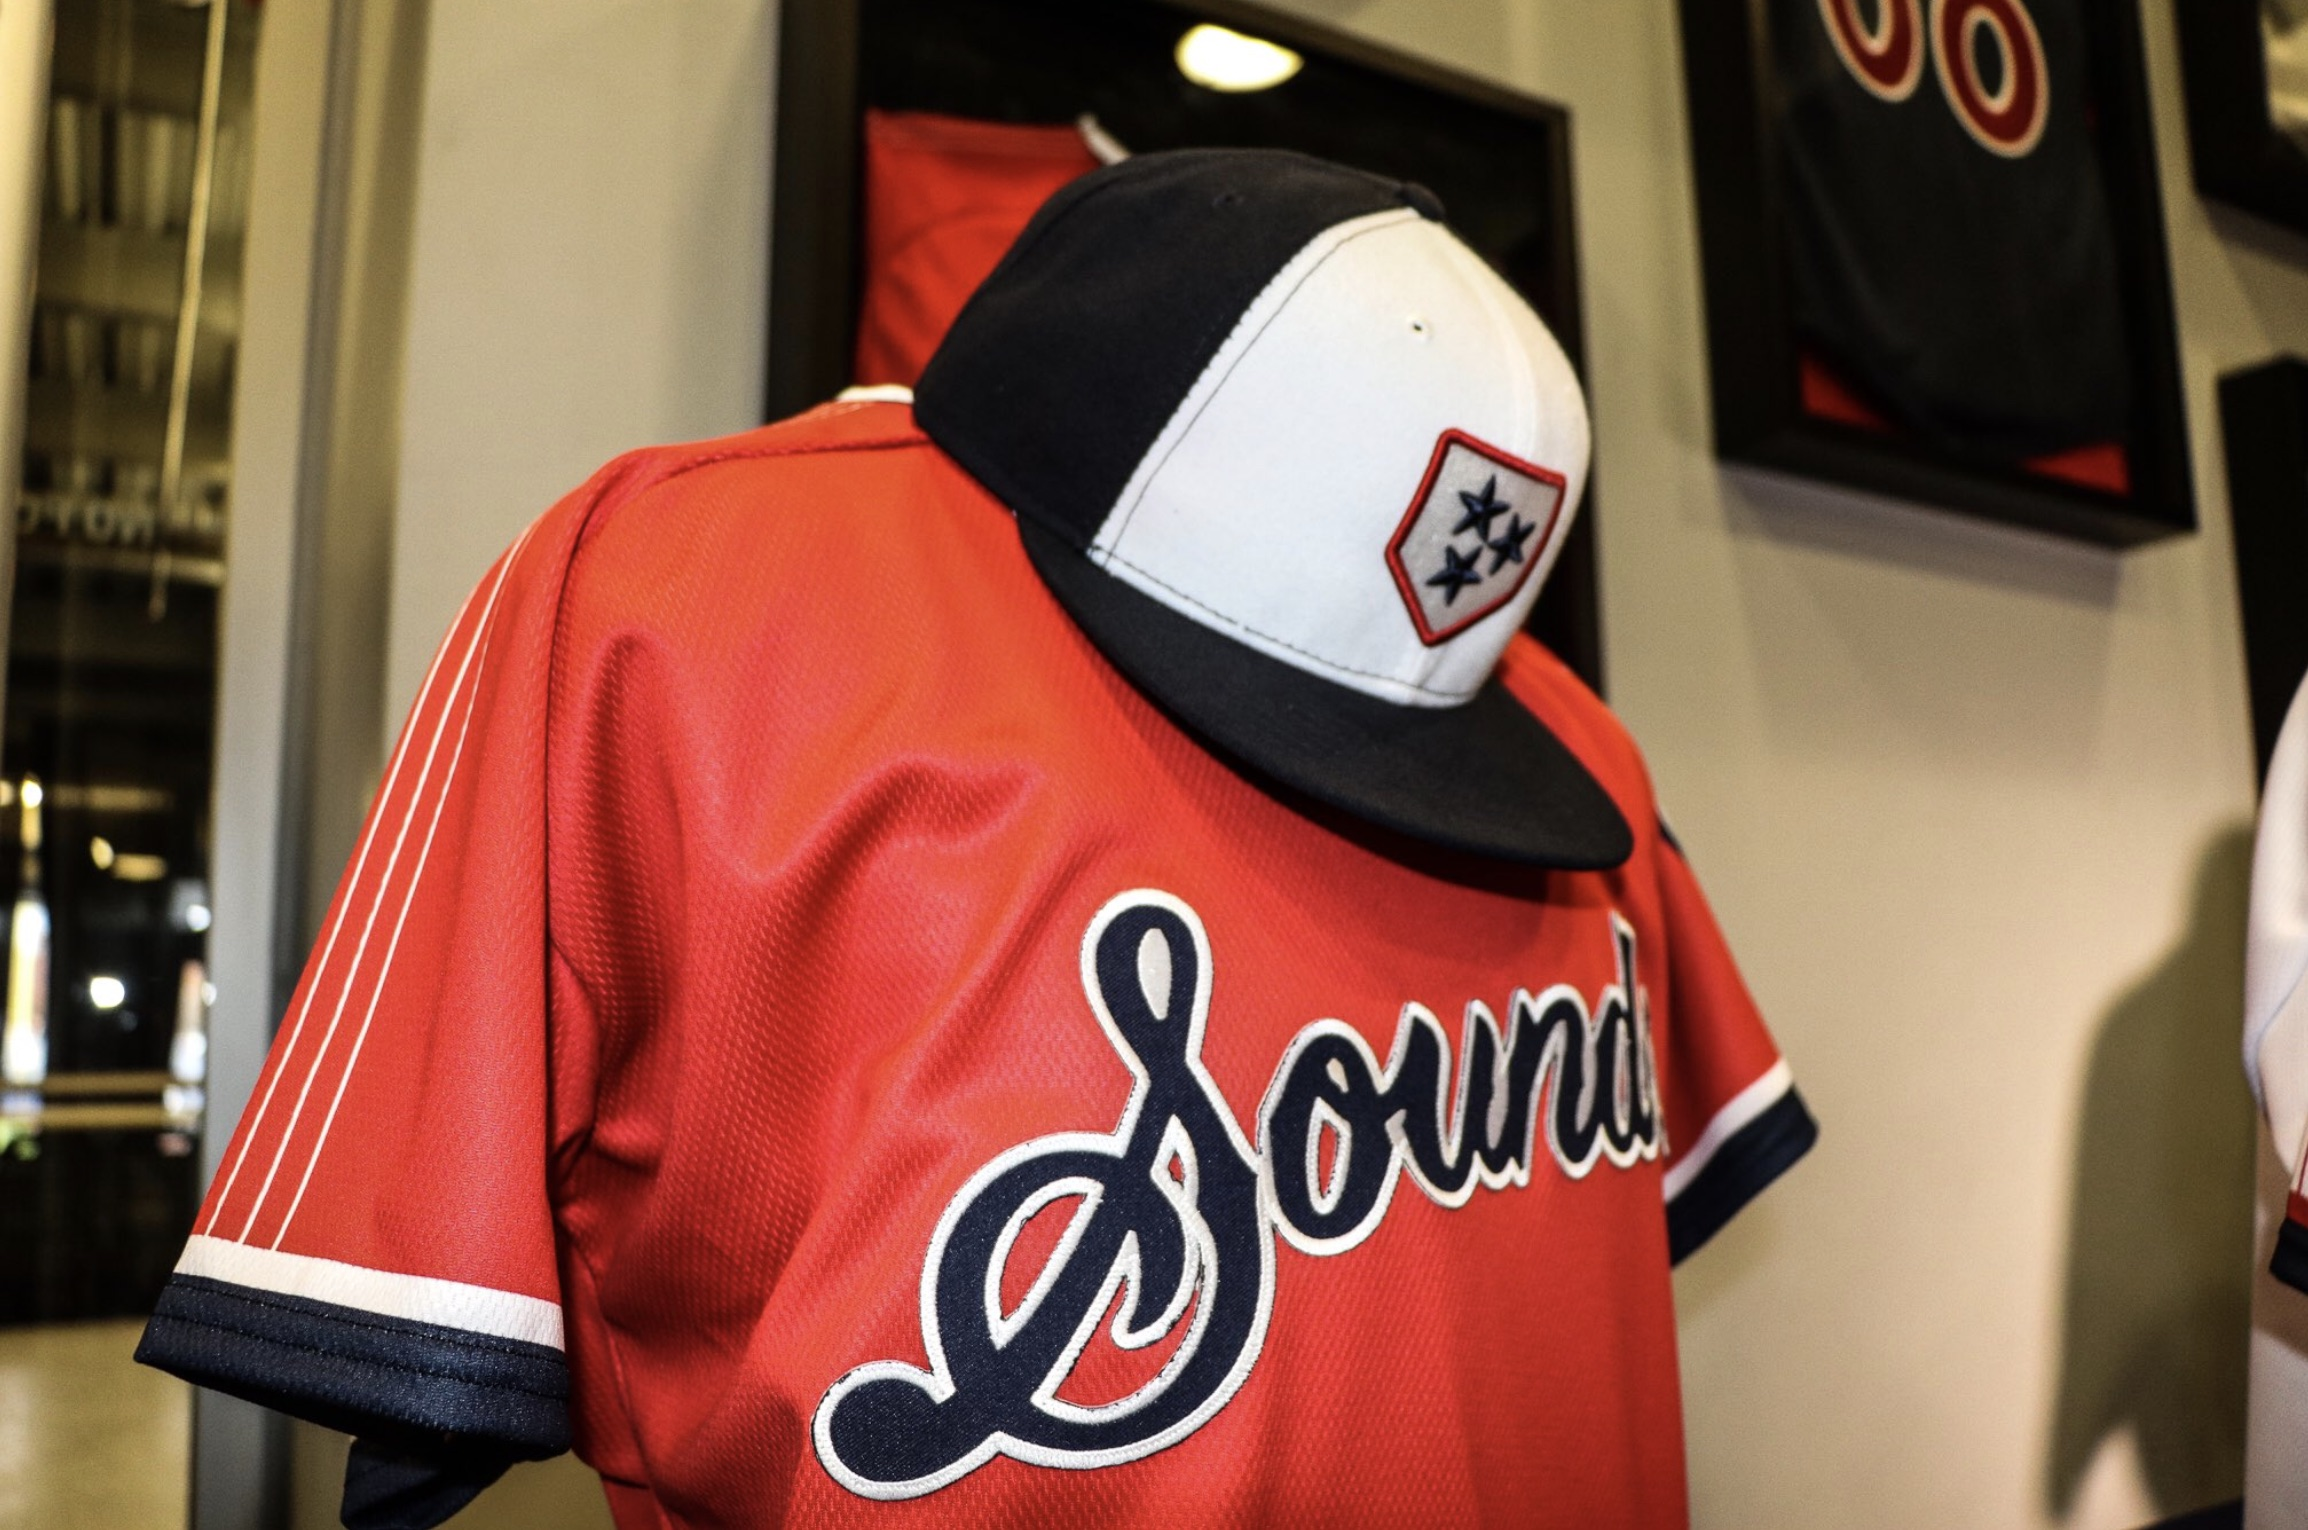 Nashville Sounds Singing A Different Tune With New Logos